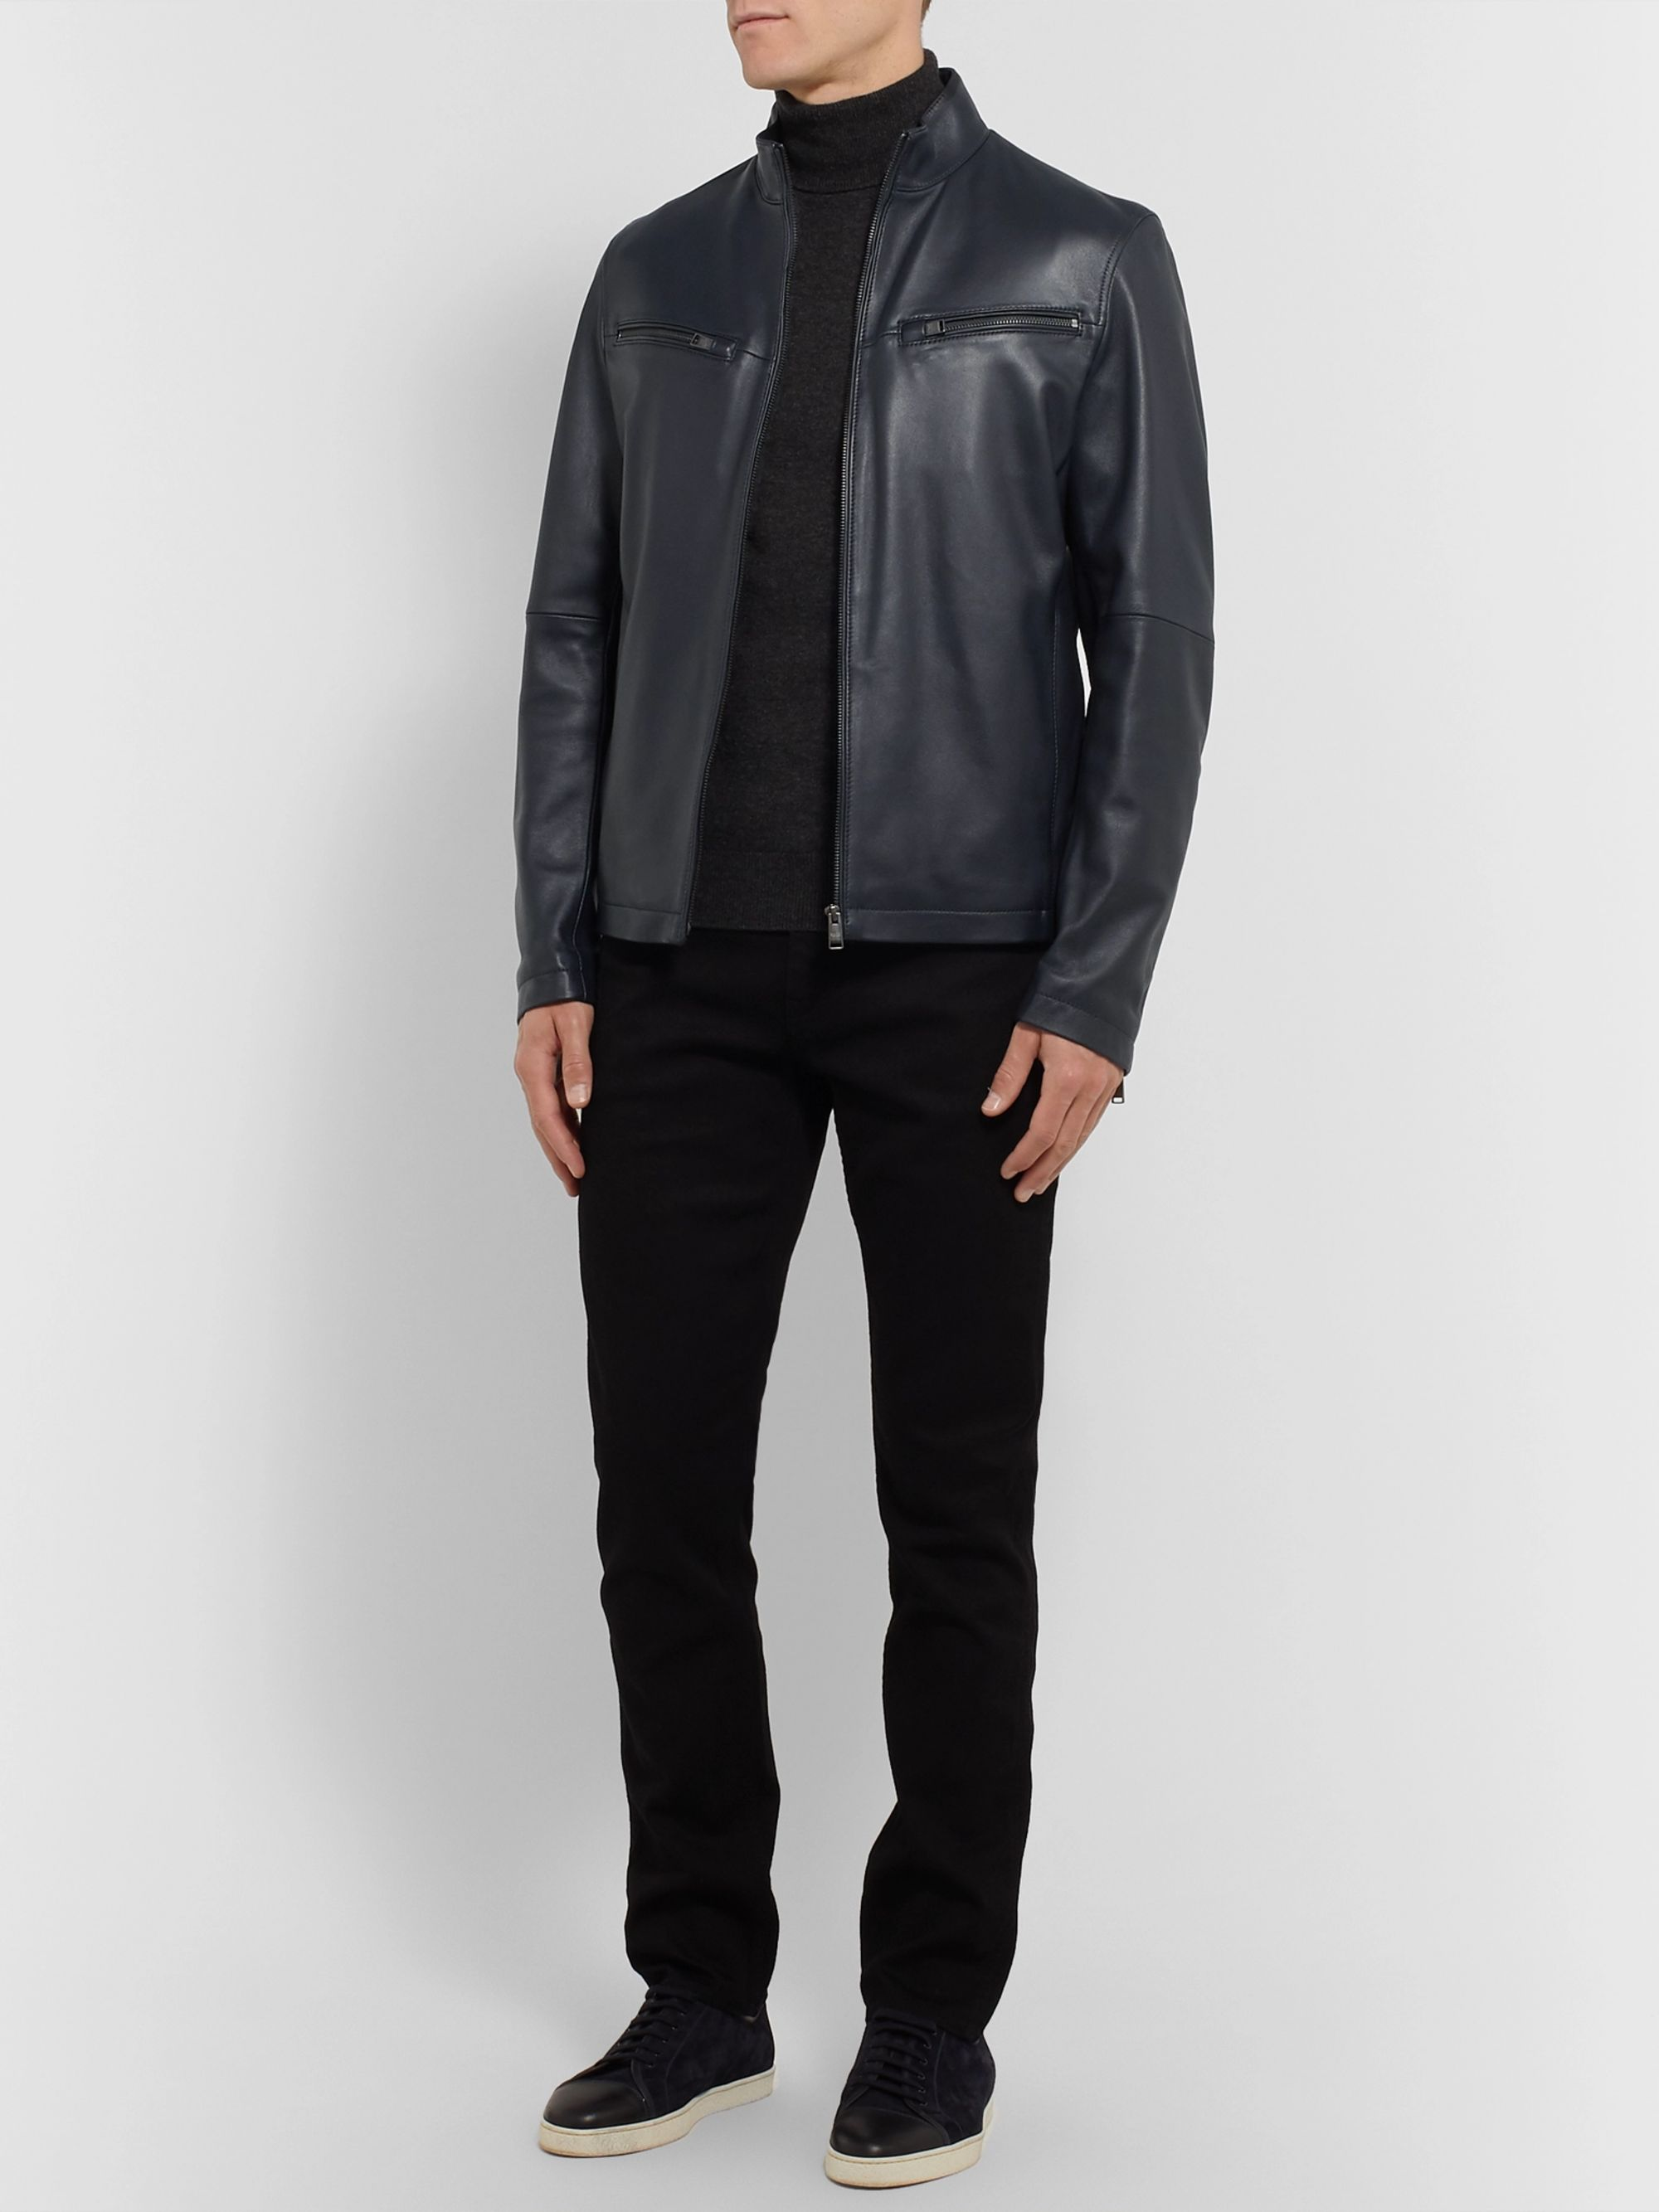 821a623db Leather Jackets for Men | Designer Menswear | MR PORTER